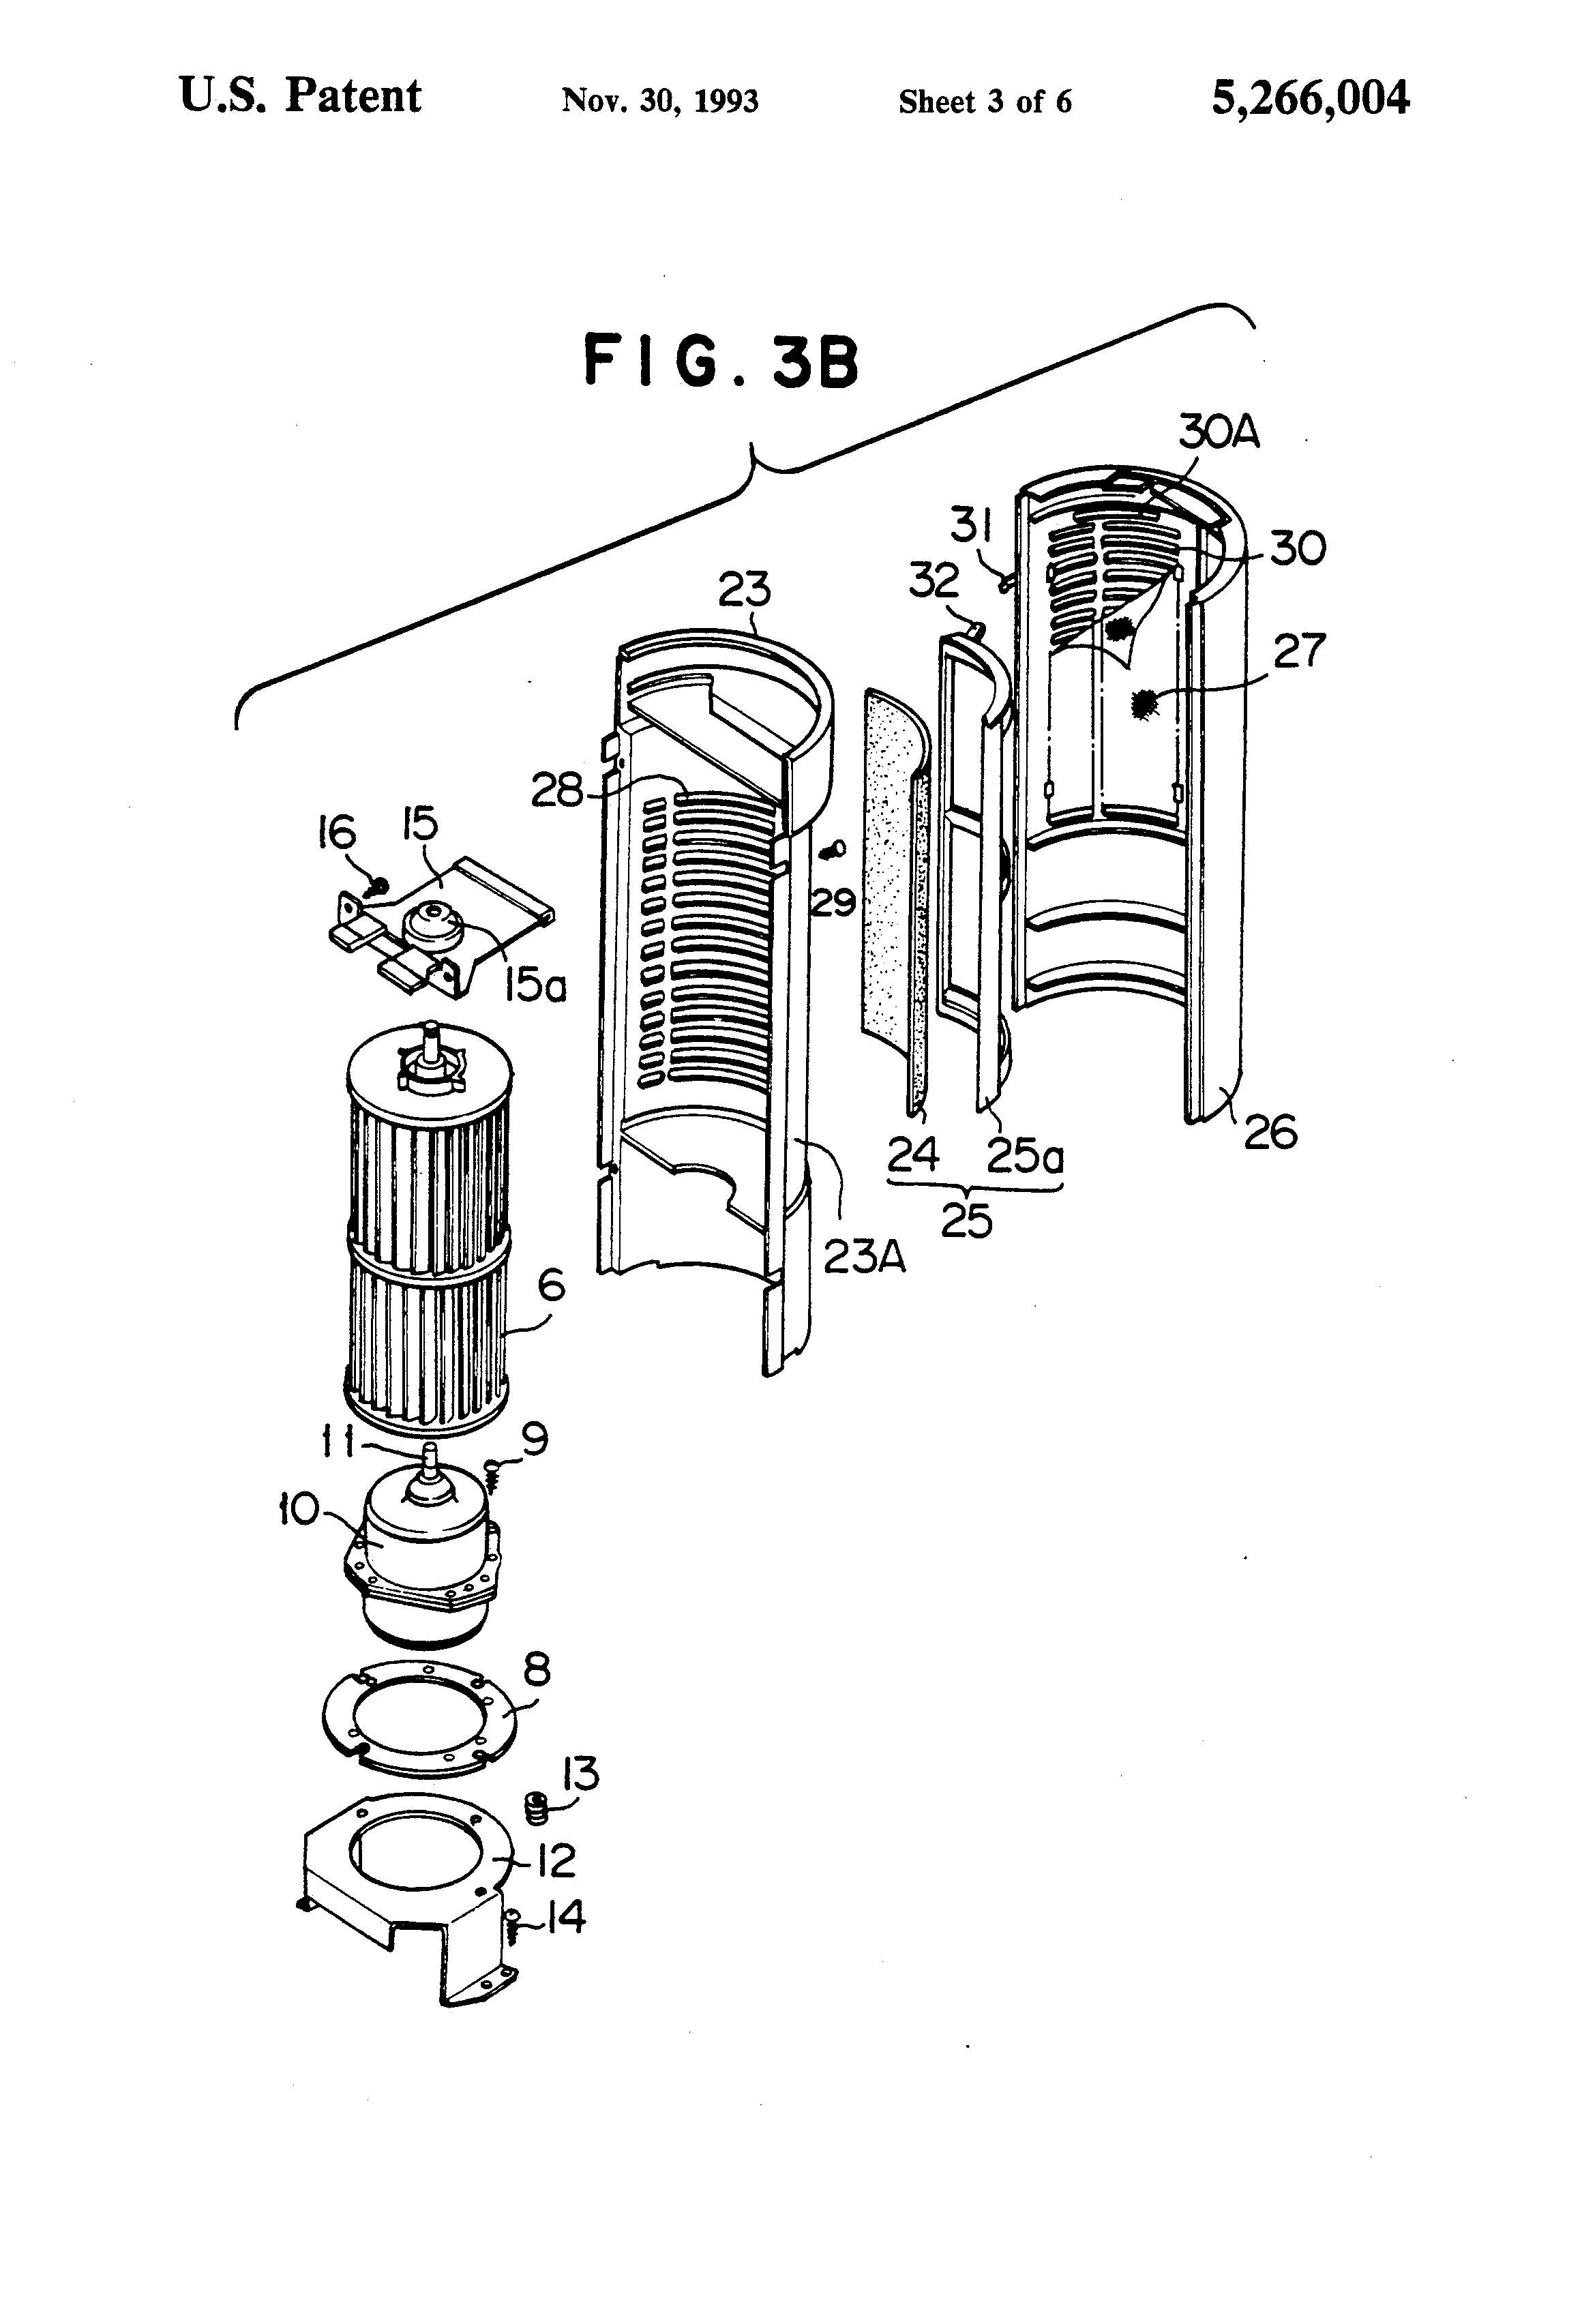 Patente Us5266004 Blower Google Patentes Gem Wiring Diagram 26 Patent Drawing